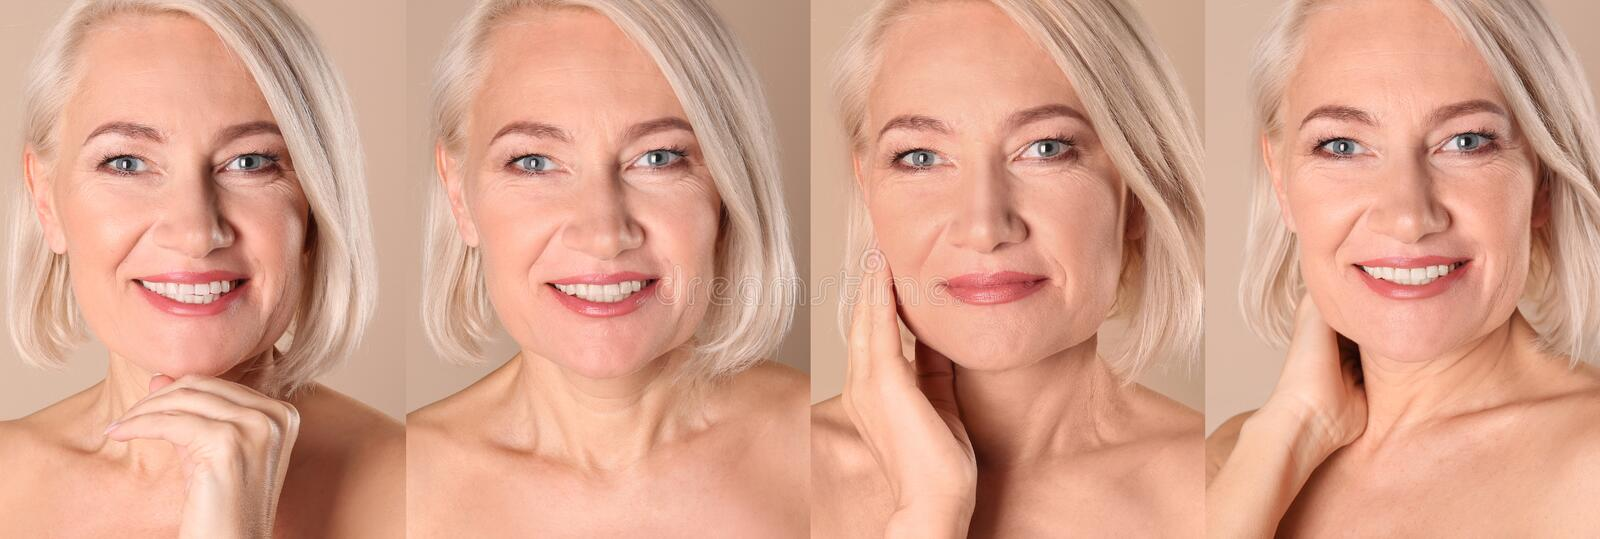 Collage of mature woman with beautiful face stock image